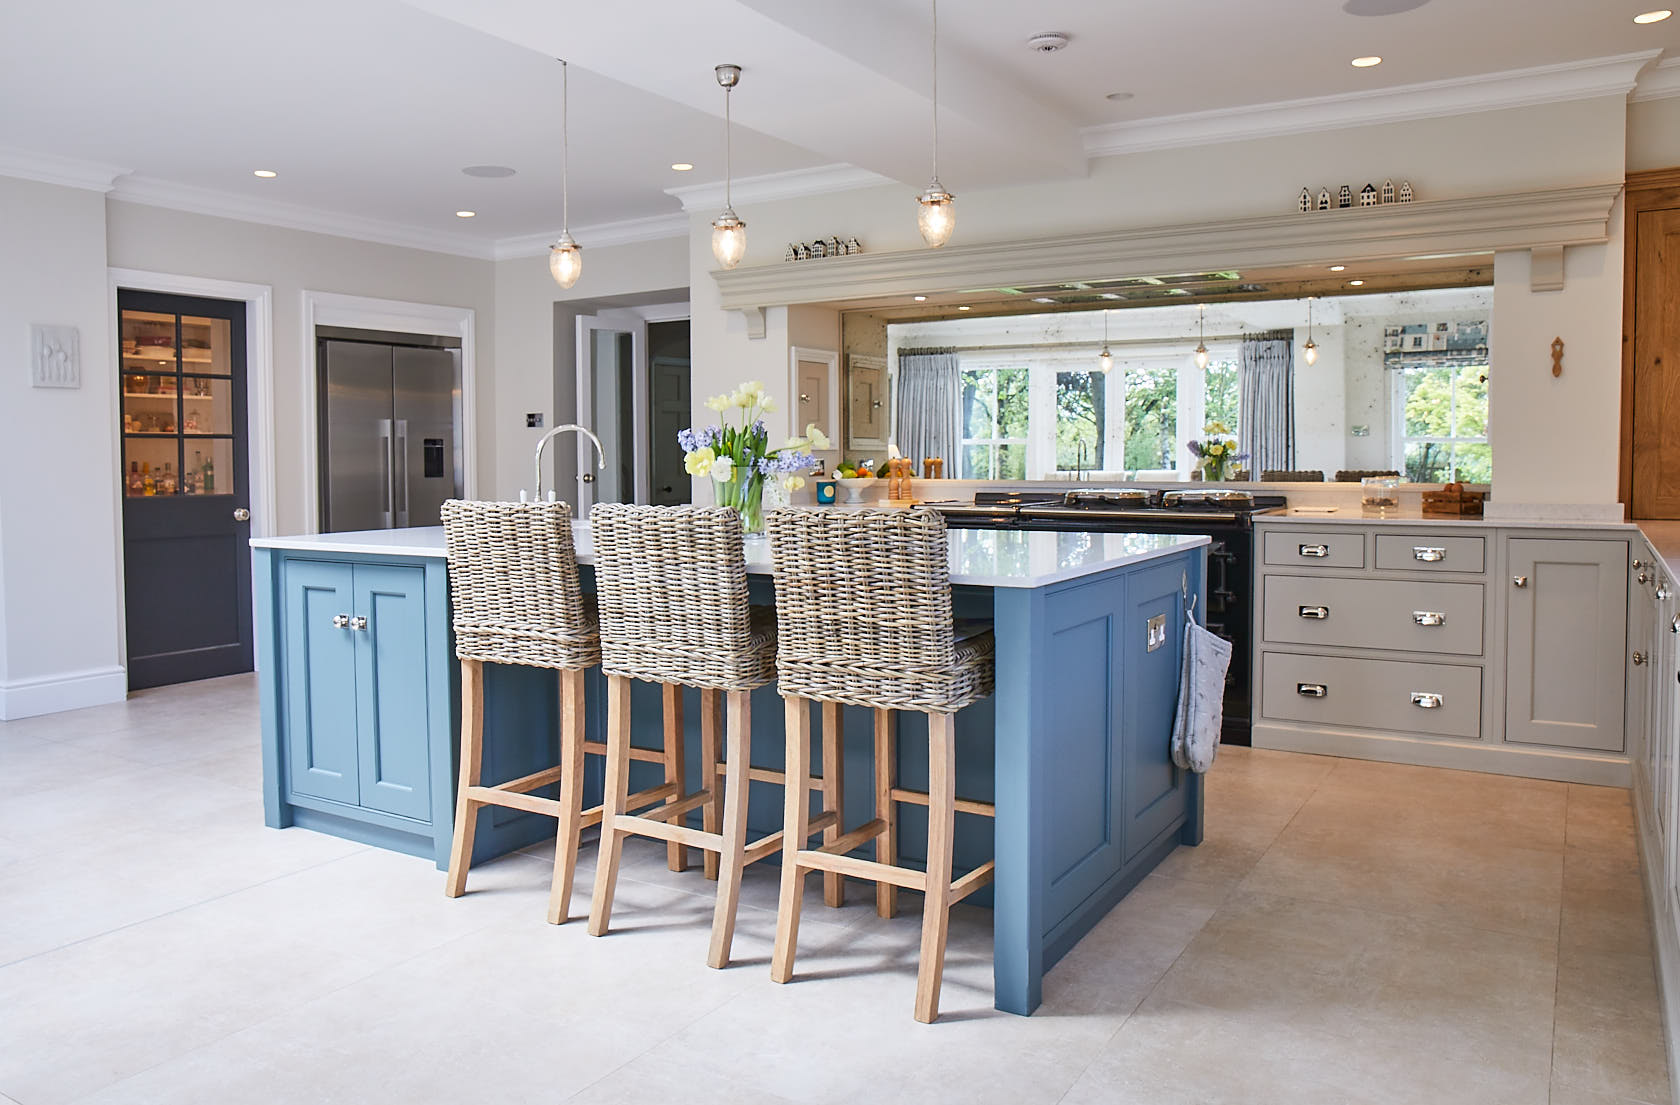 Wicked breakfast bar stools under kitchen island